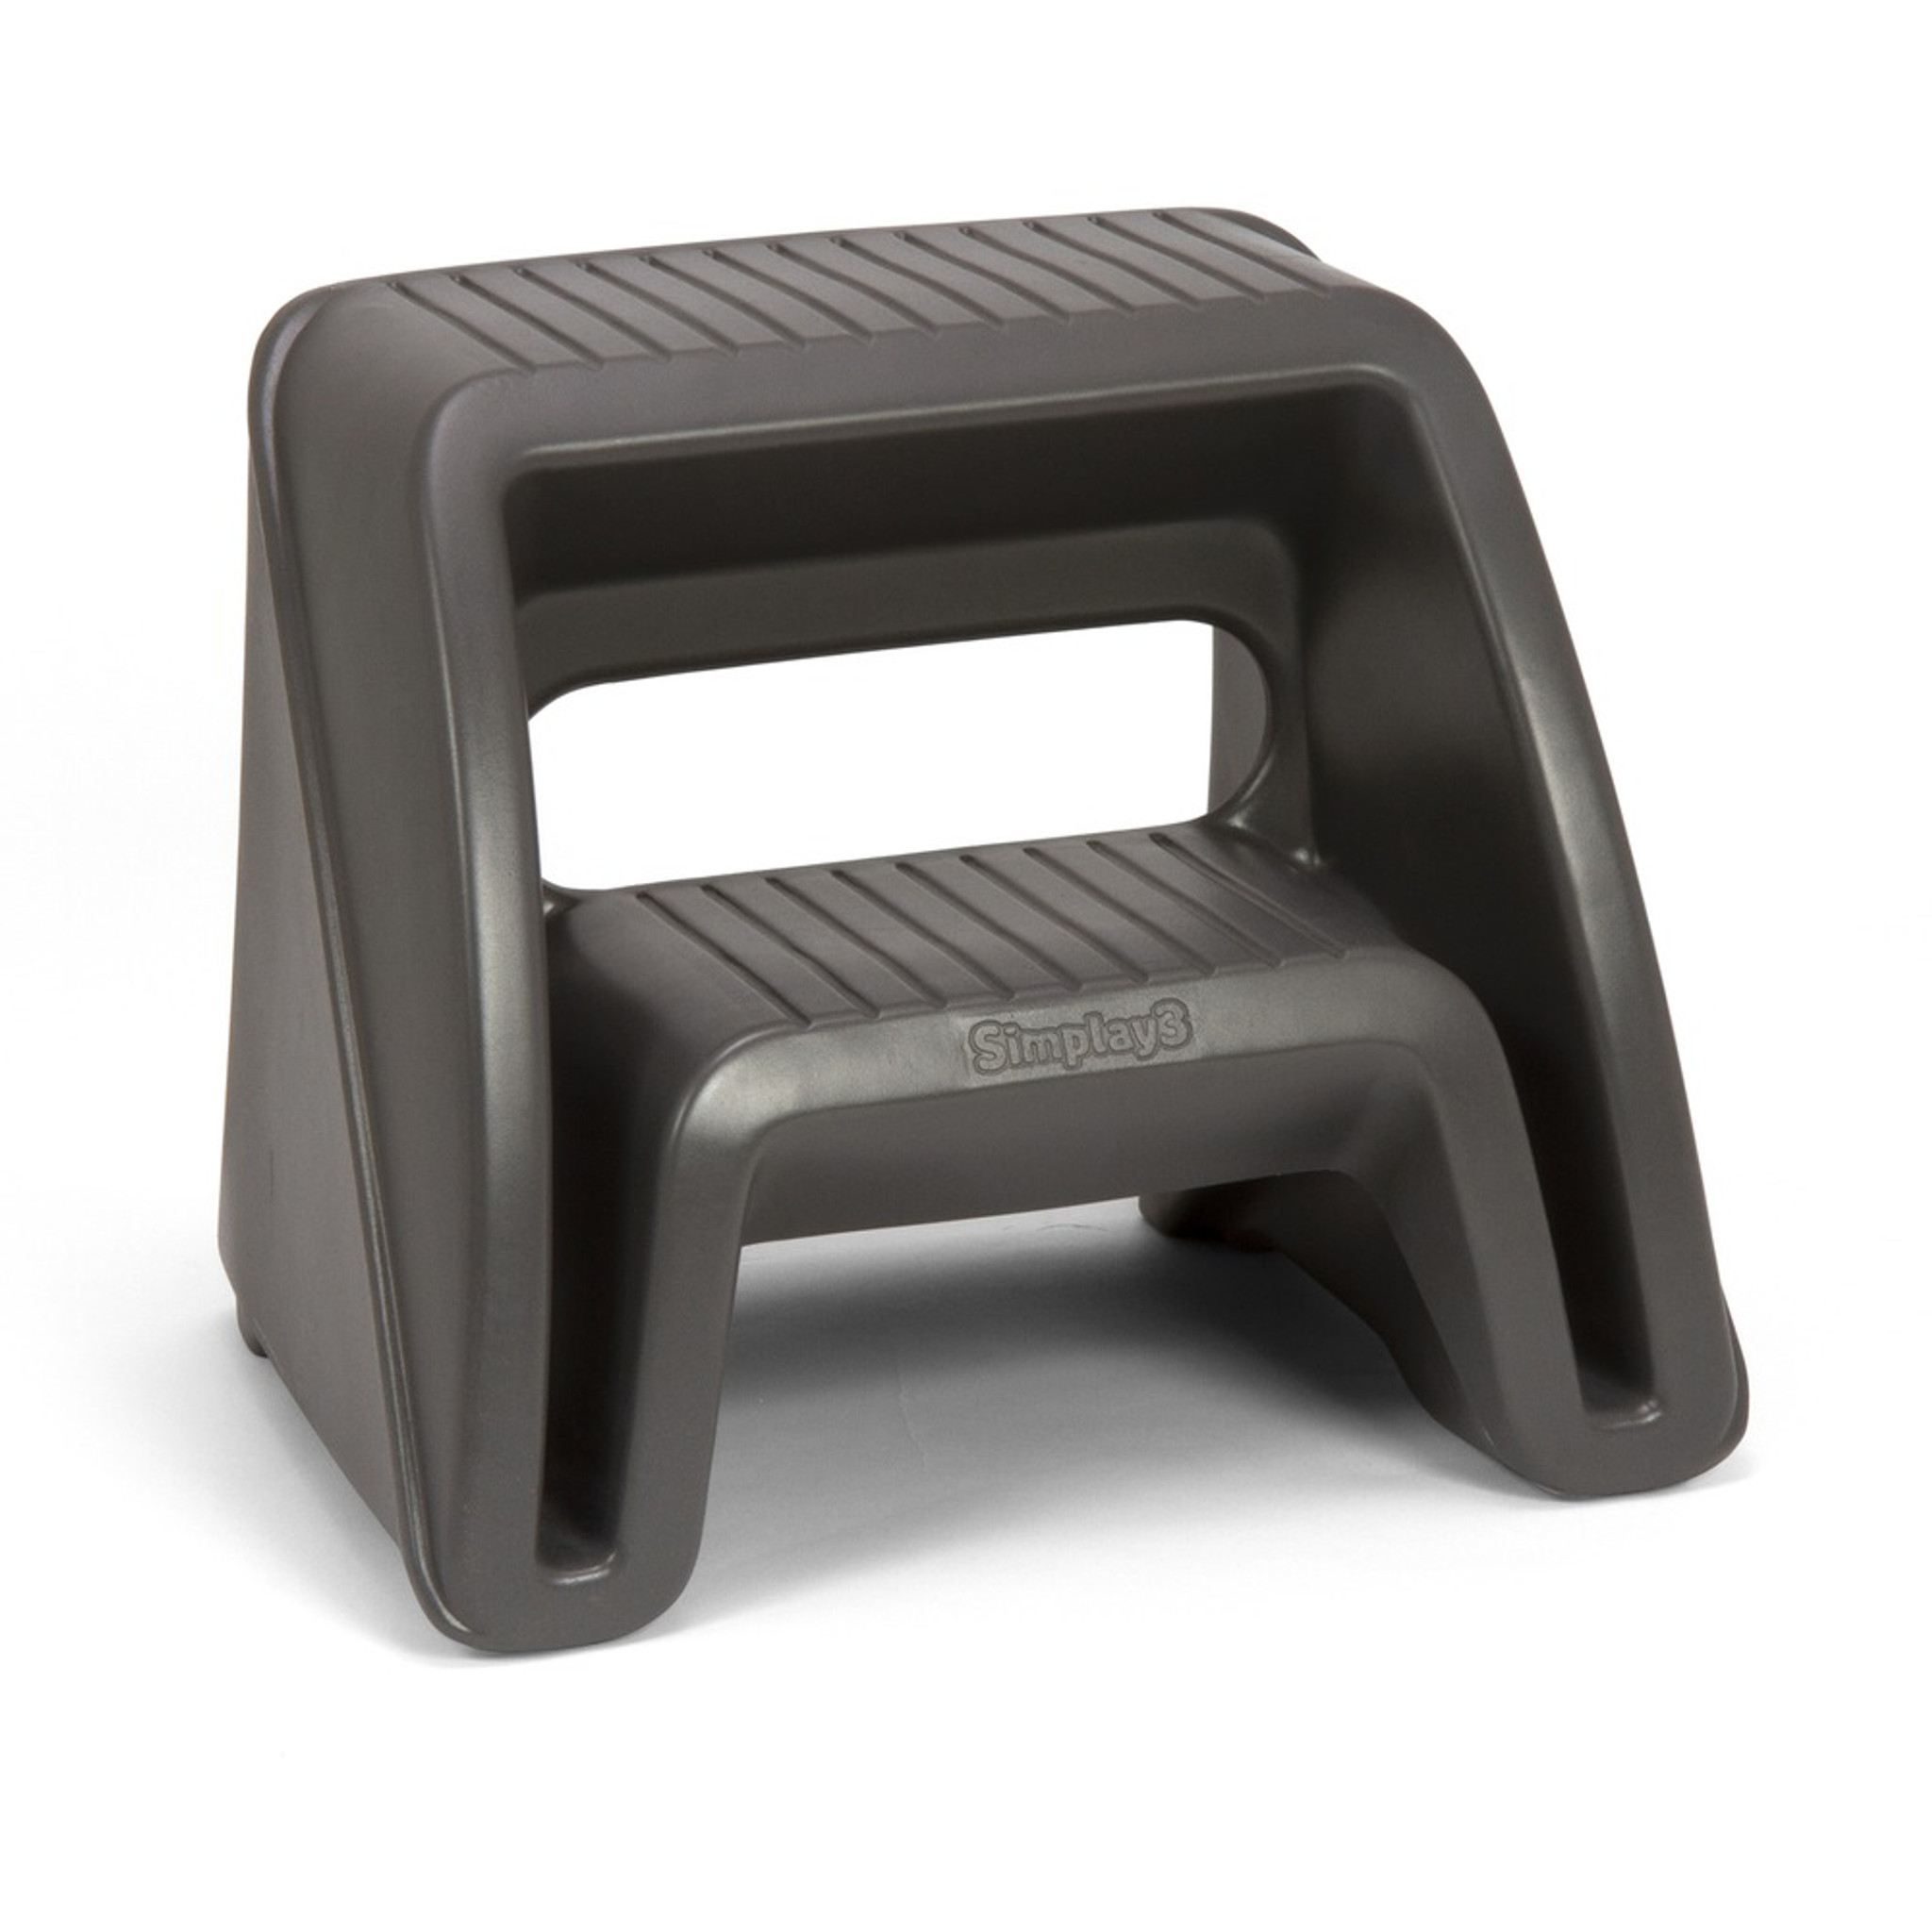 Terrific Handy Home Step Stool Machost Co Dining Chair Design Ideas Machostcouk